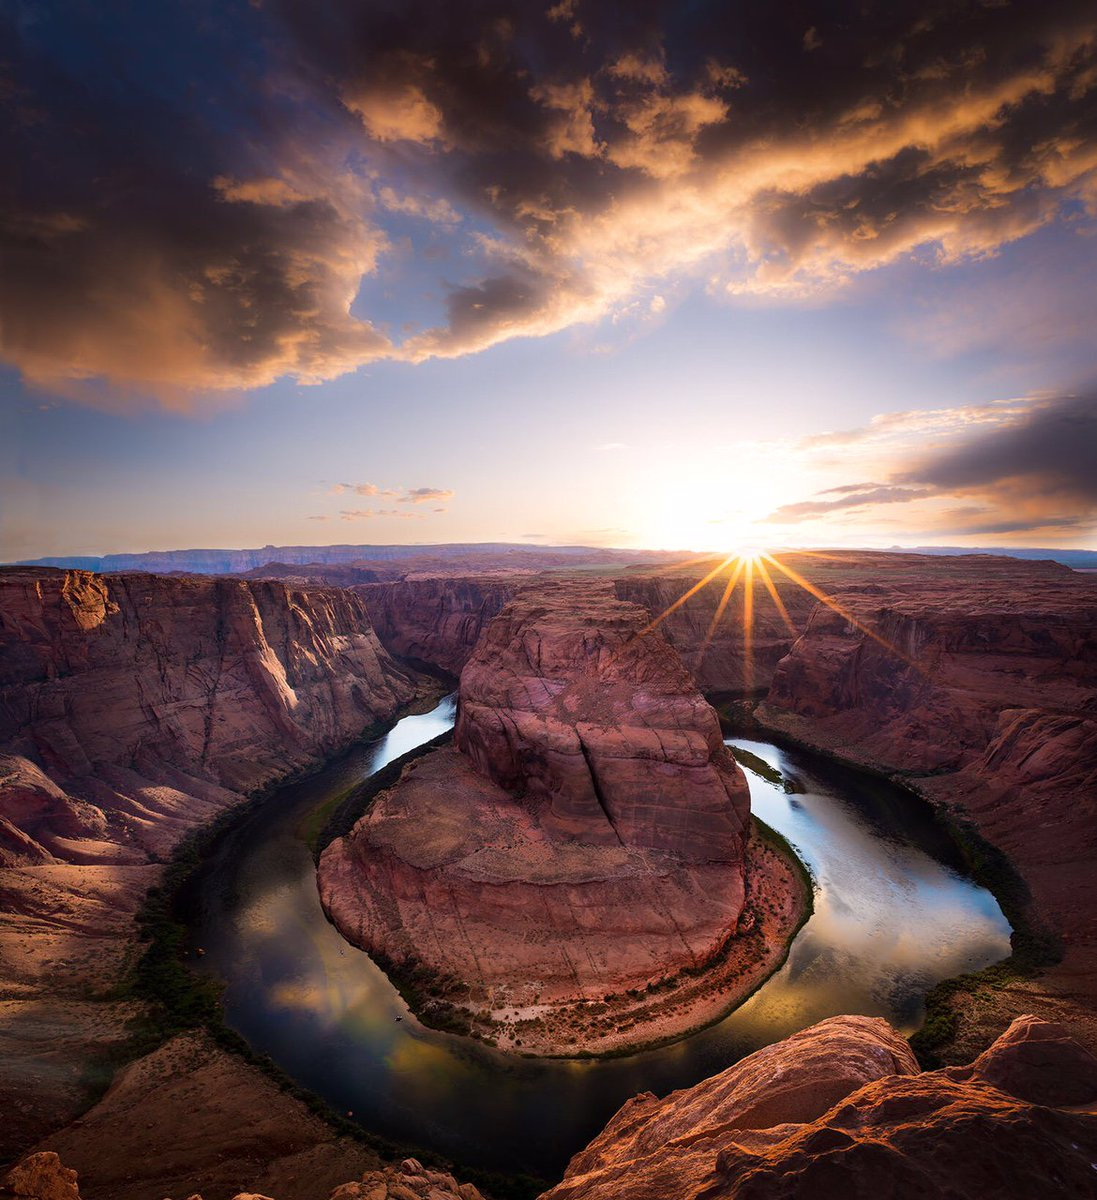 An awe-inspiring natural wonder: Horseshoe Bend in #Arizona by Scott R...